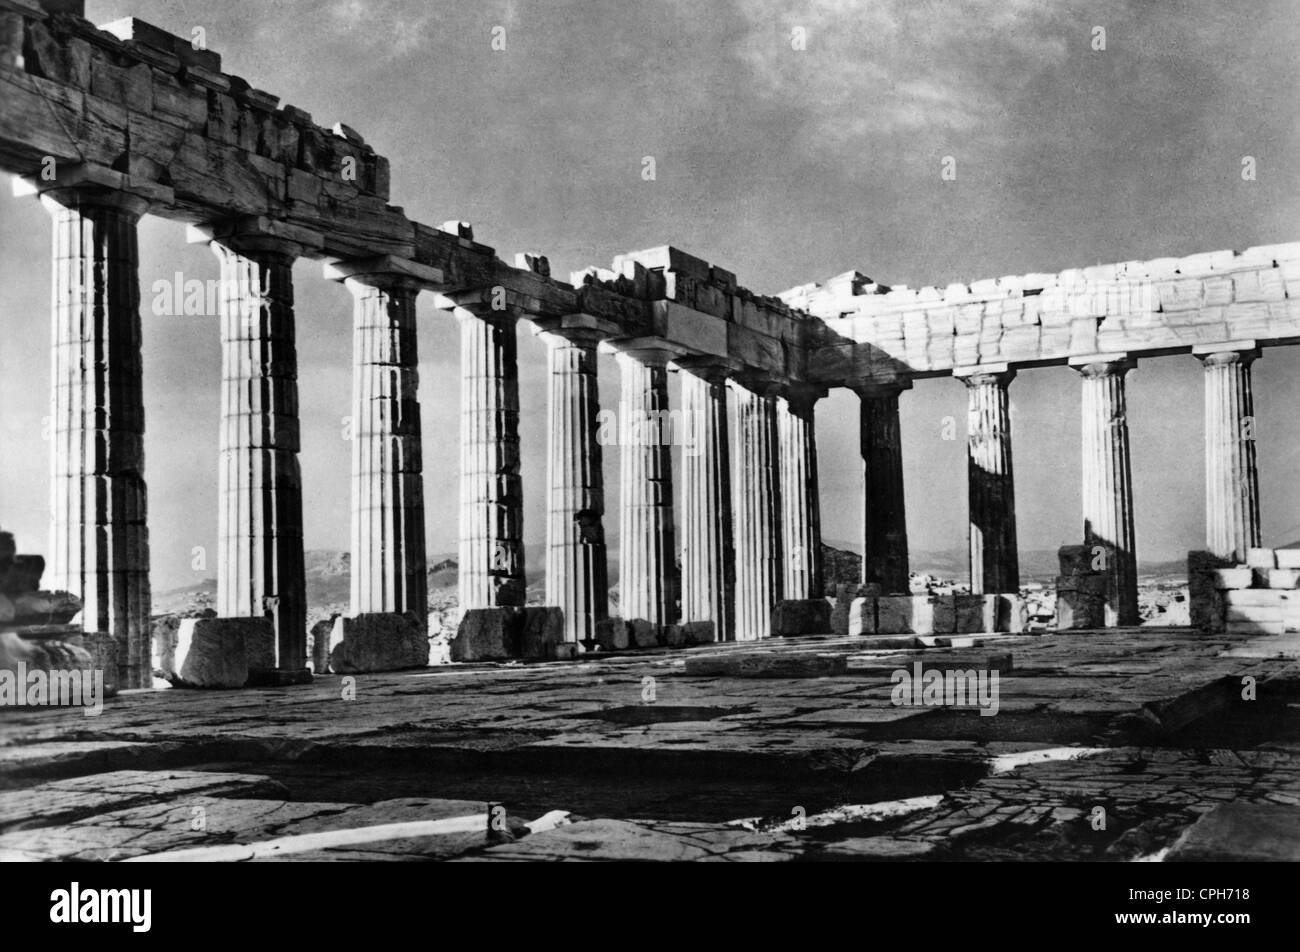 Ancient greek temple interior - Stock Photo Geography Travel Greece Athens Acropolis Parthenon Interior View 1960s Ruin Ruins Temple Temples Southeast Europe